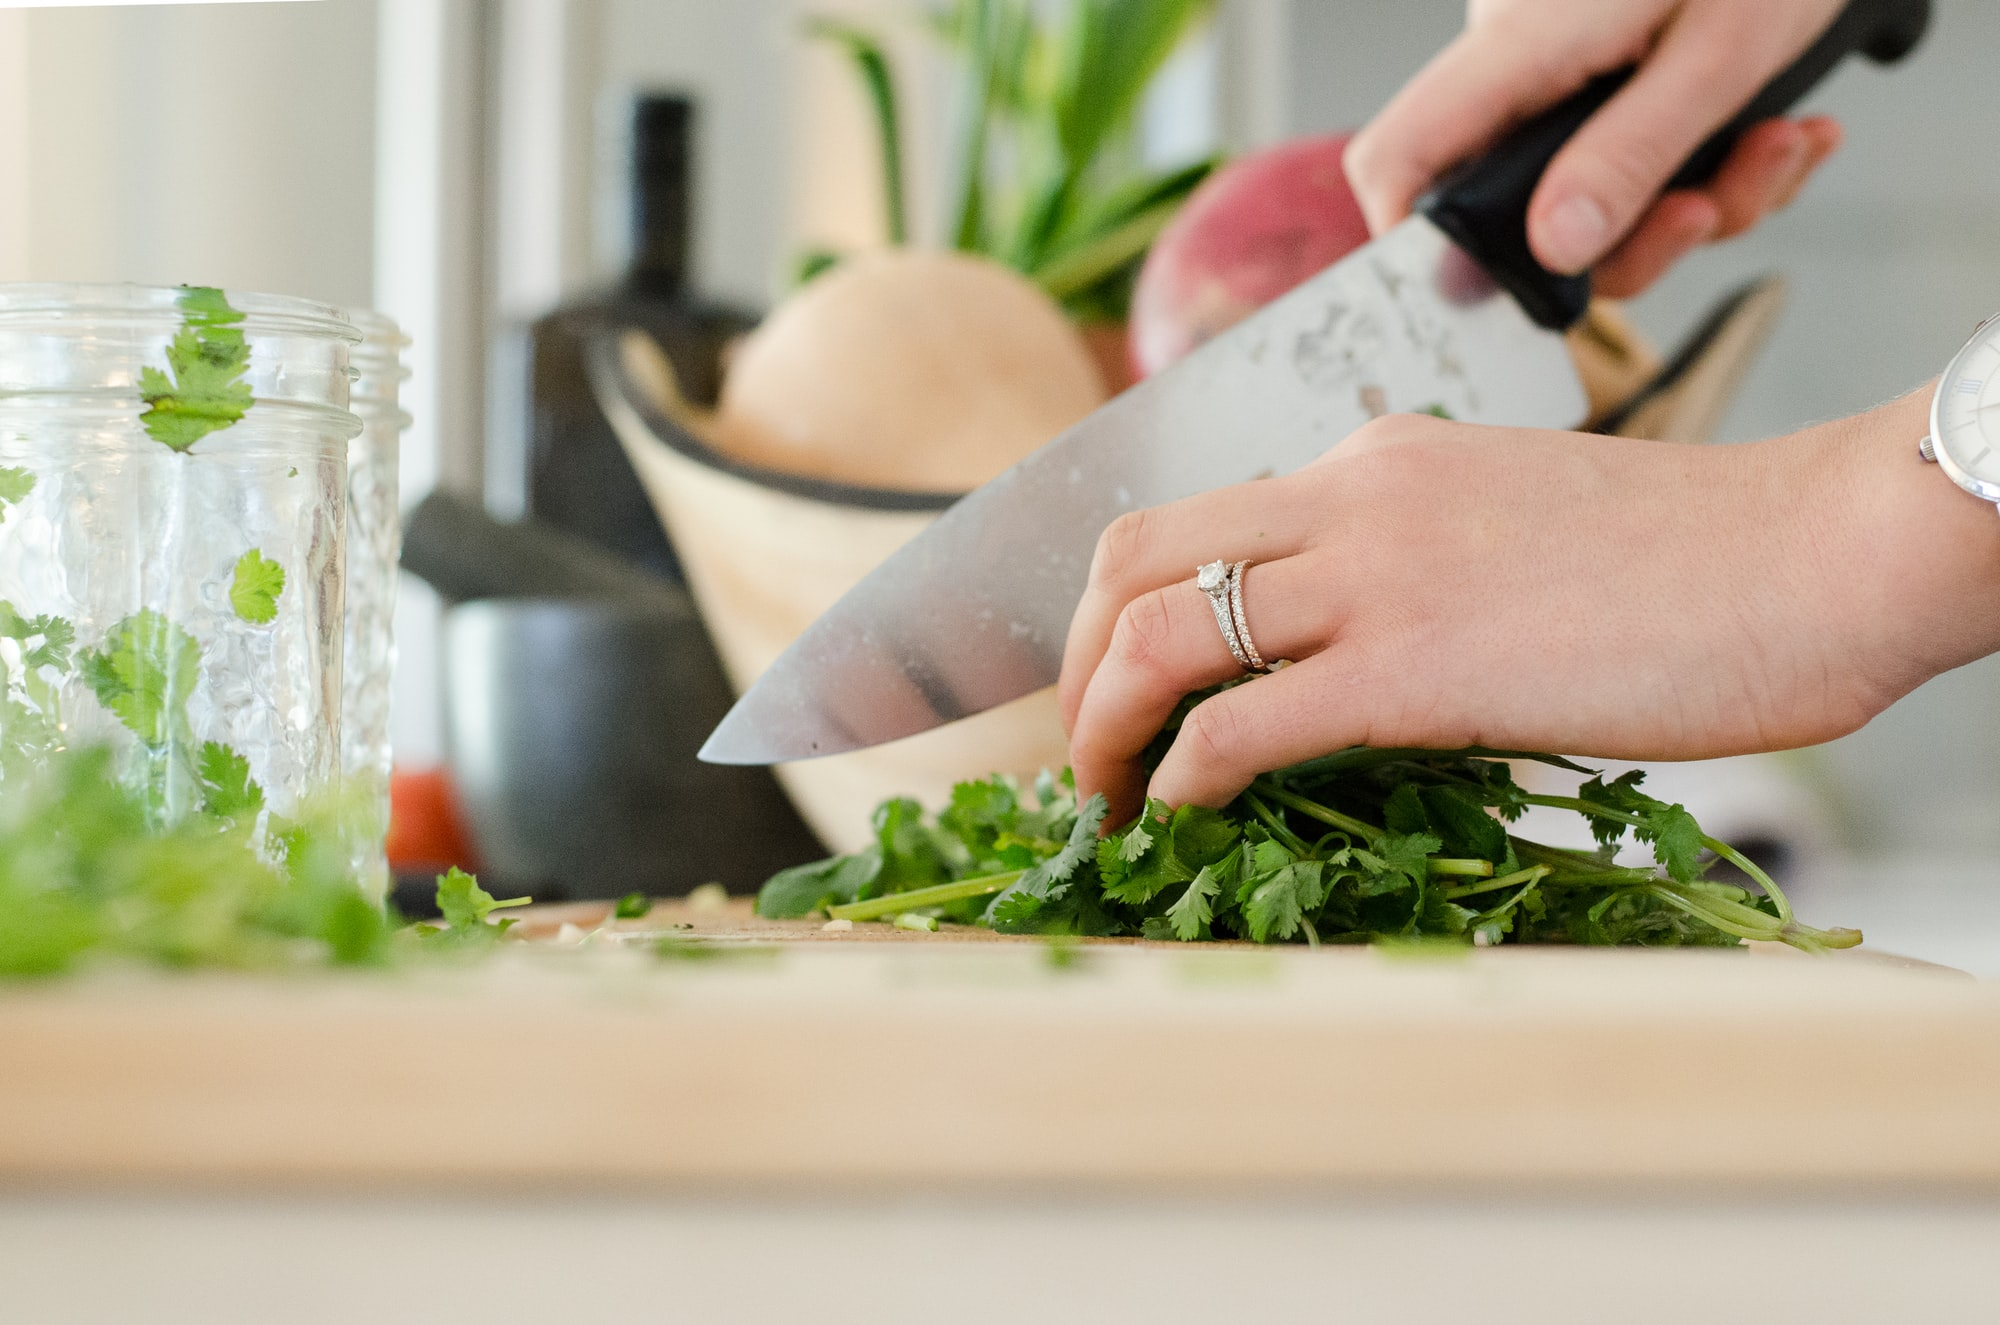 Food safety tip: chop vegetables like cilantro and meat using different utensils and boards